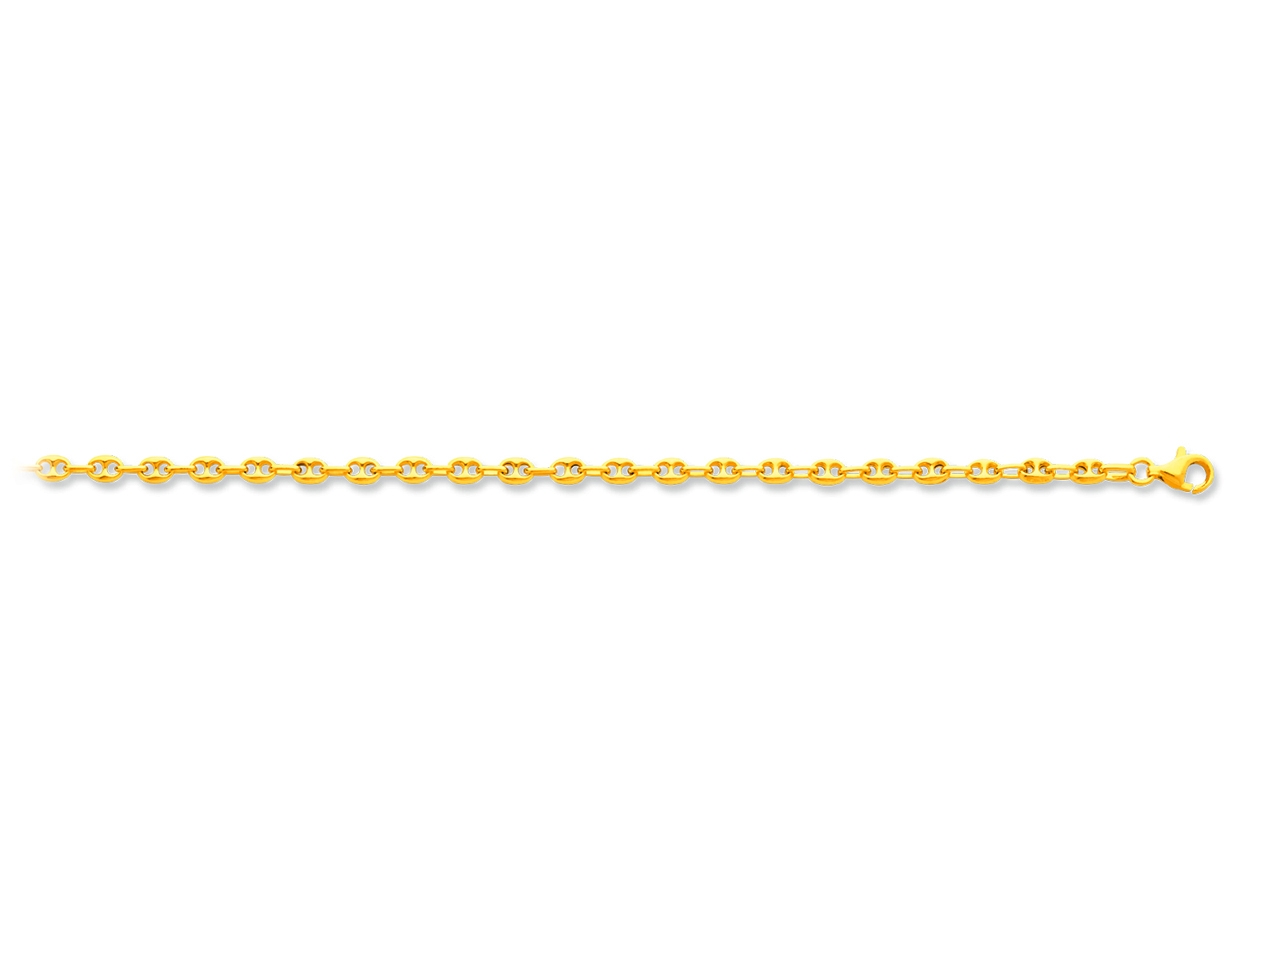 Collier maille grains de cafés creux, Or jaune 18k, 3,3 mm, 50 cm